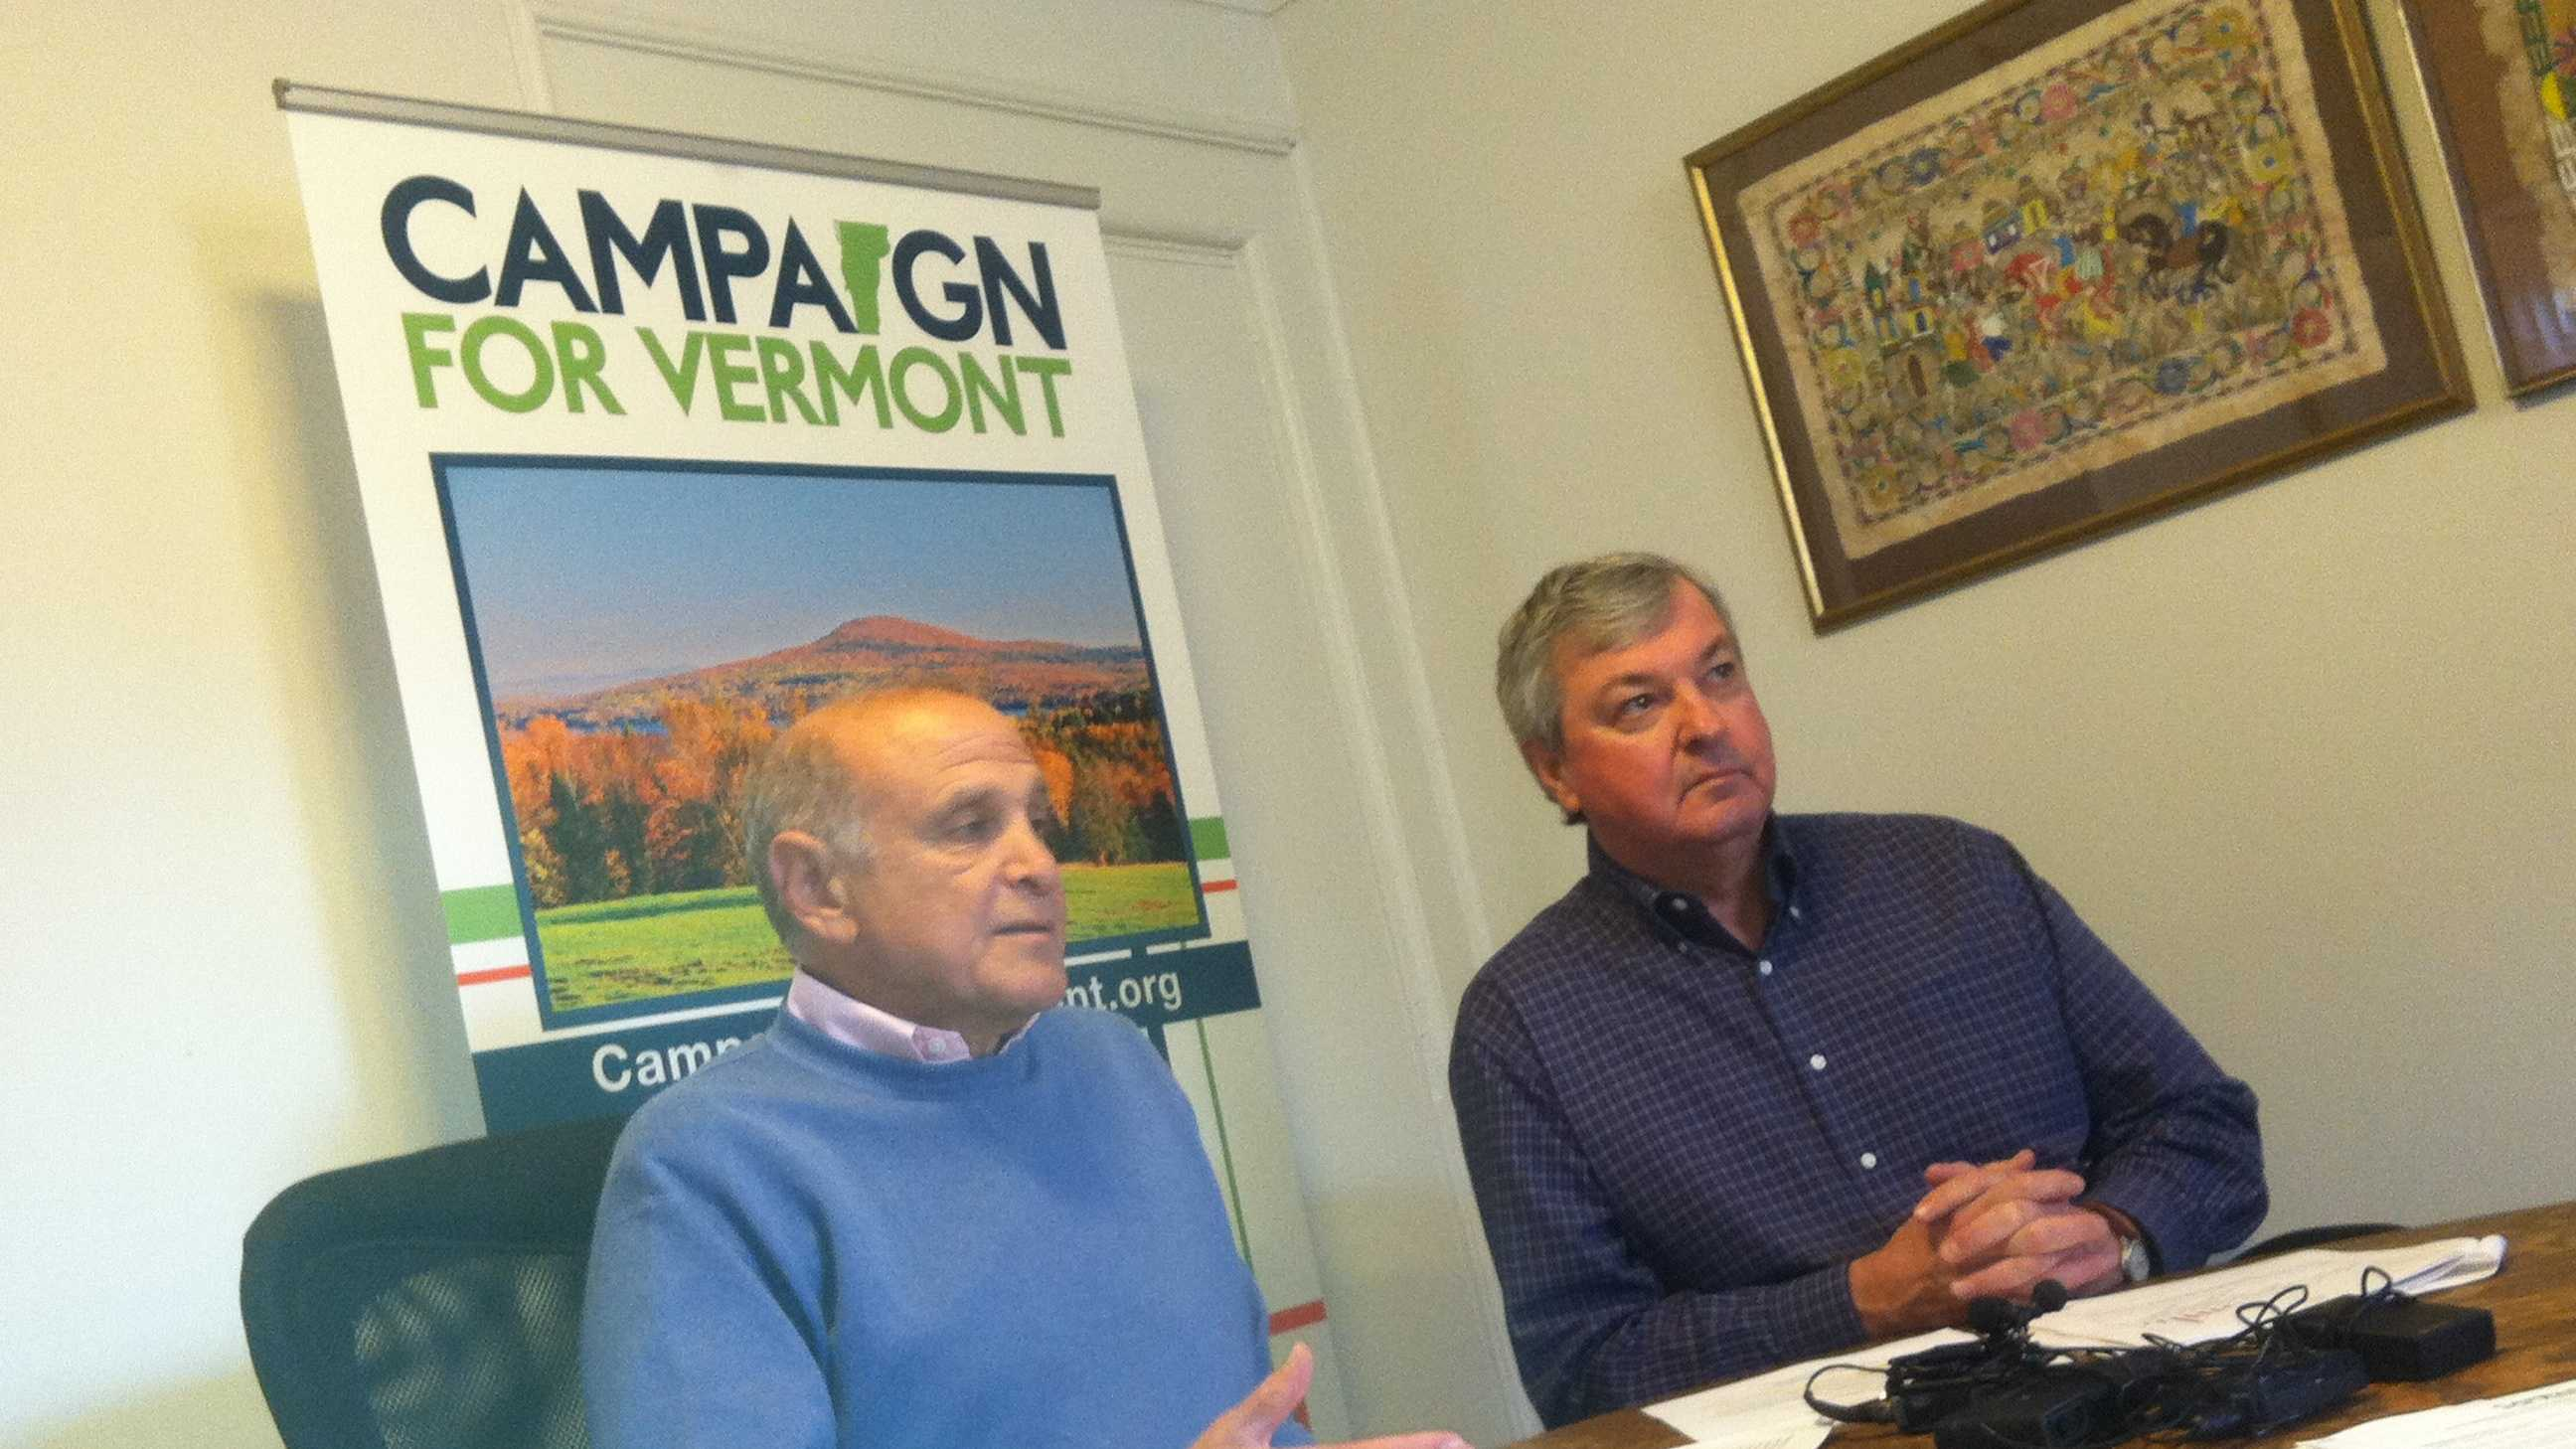 Campaign for Vermont co-founders Bruce Lisman and Tom Pelham.